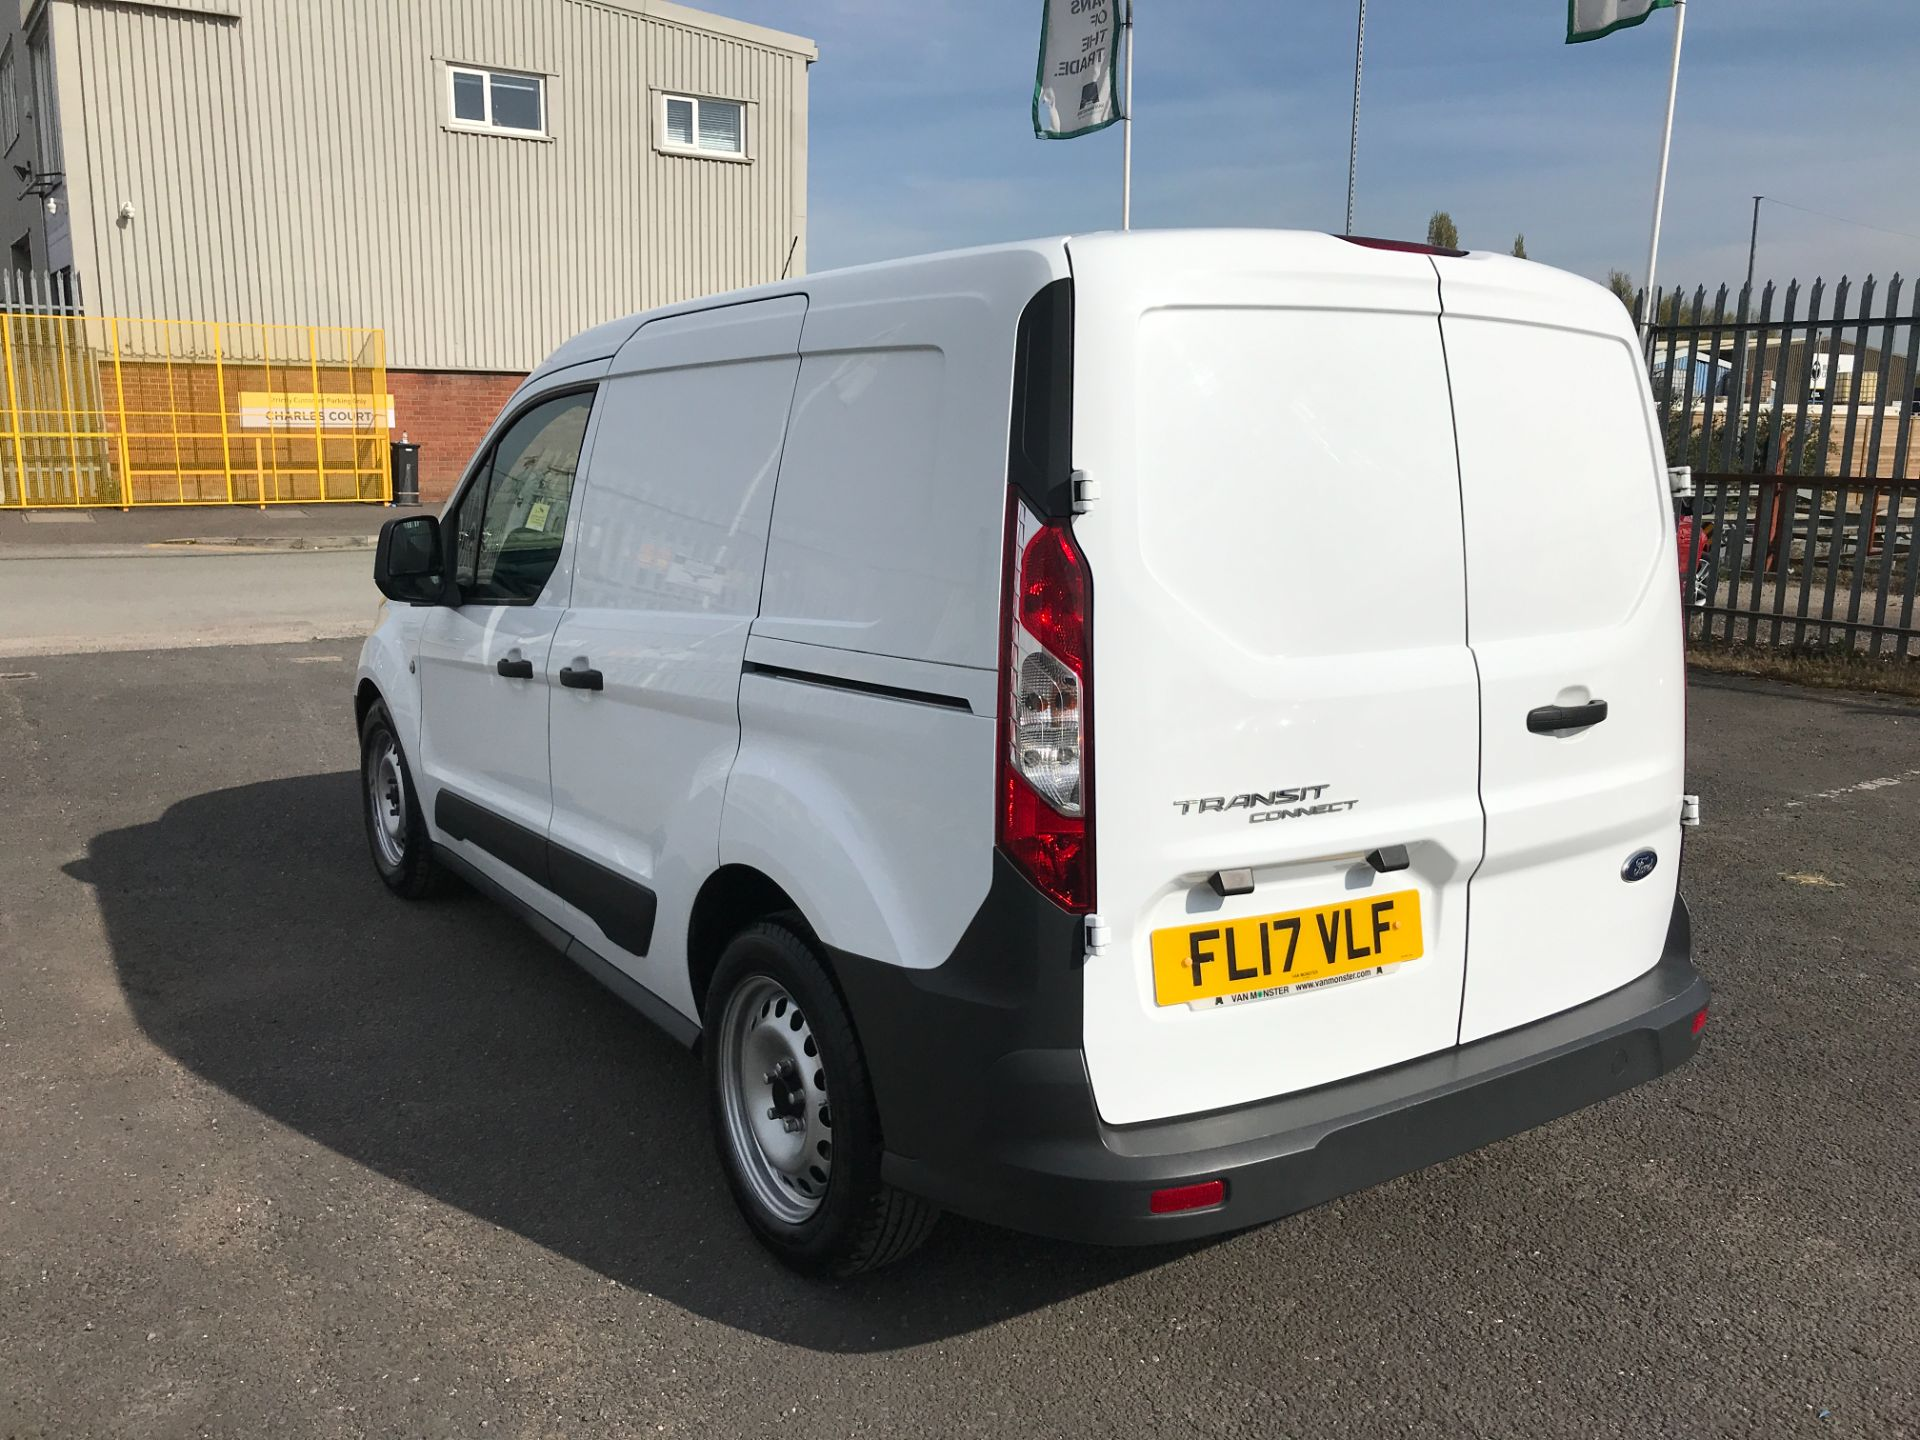 2017 Ford Transit Connect T200 L1 H1 1.5TDCI 75PS EURO 6  (FL17VLF) Image 5